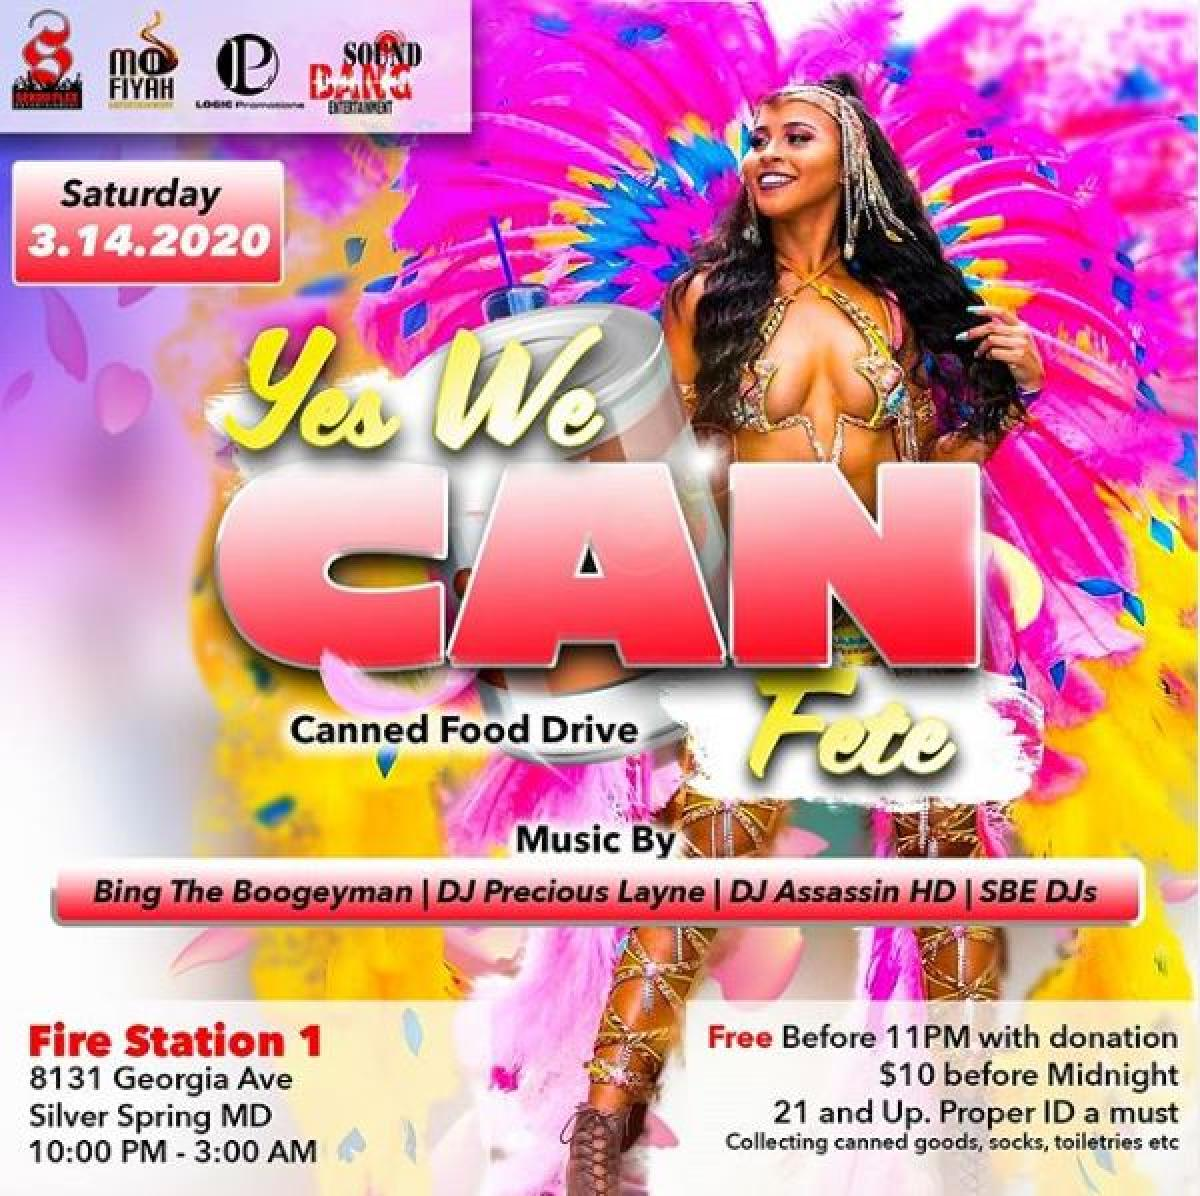 Yes We Can Fete flyer or graphic.